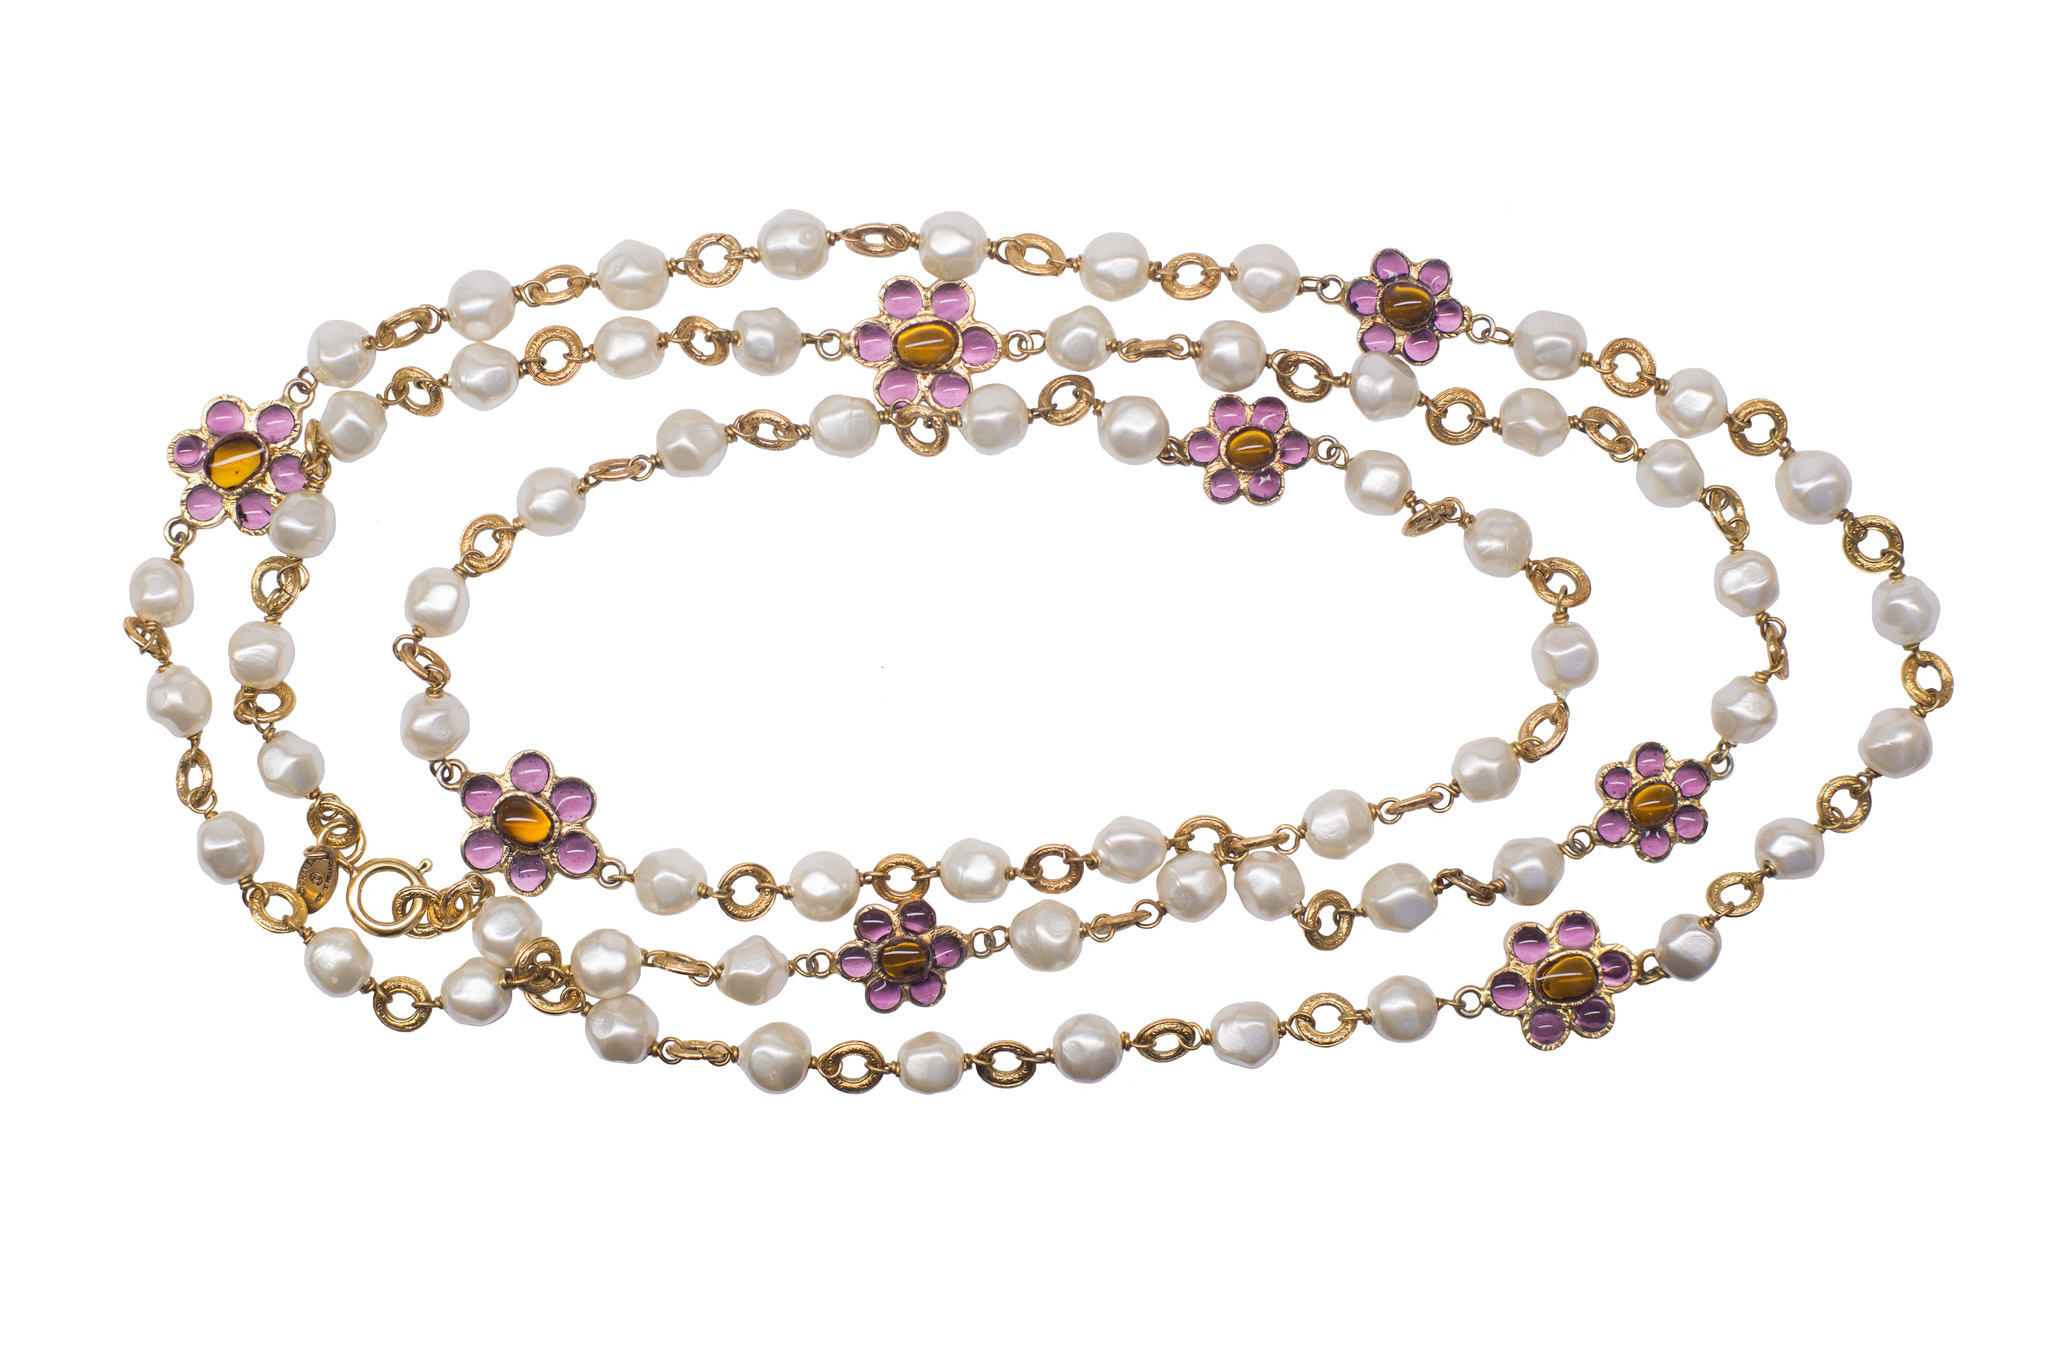 Chanel baroque pearls Gripoix glass necklace